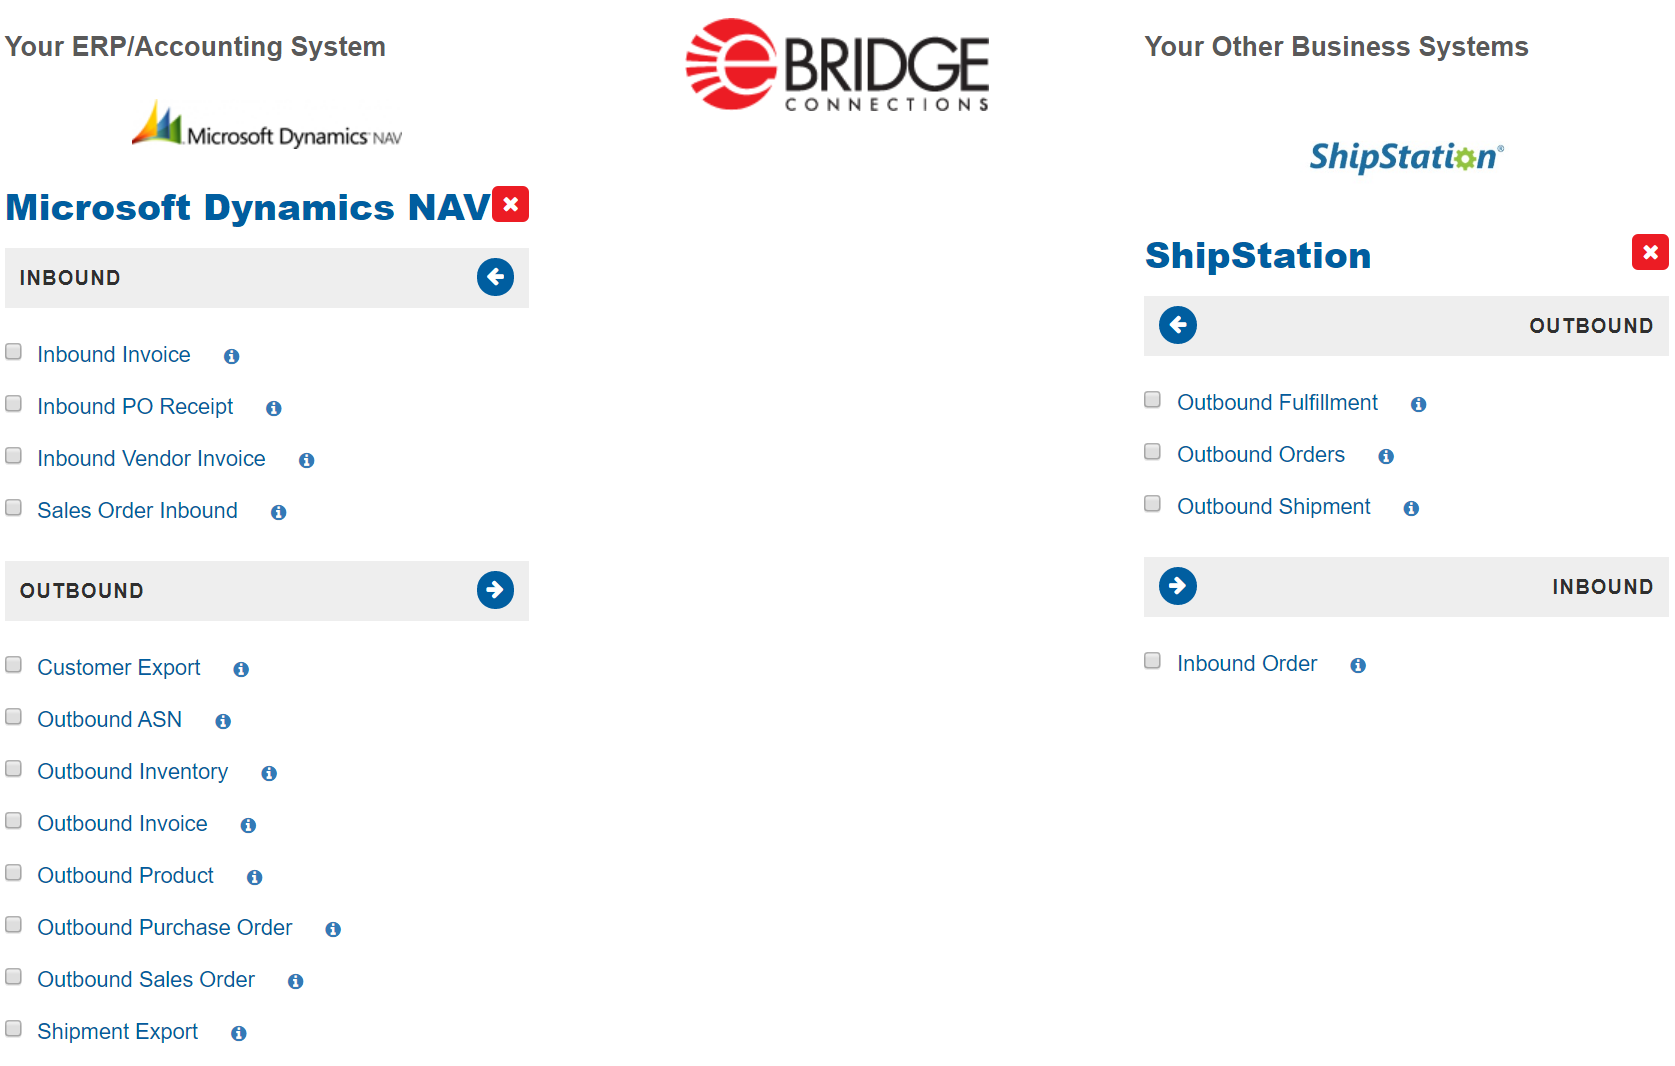 Microsoft-DYnamics-NAV-and-Shipstation-Integration-from-eBridge.PNG